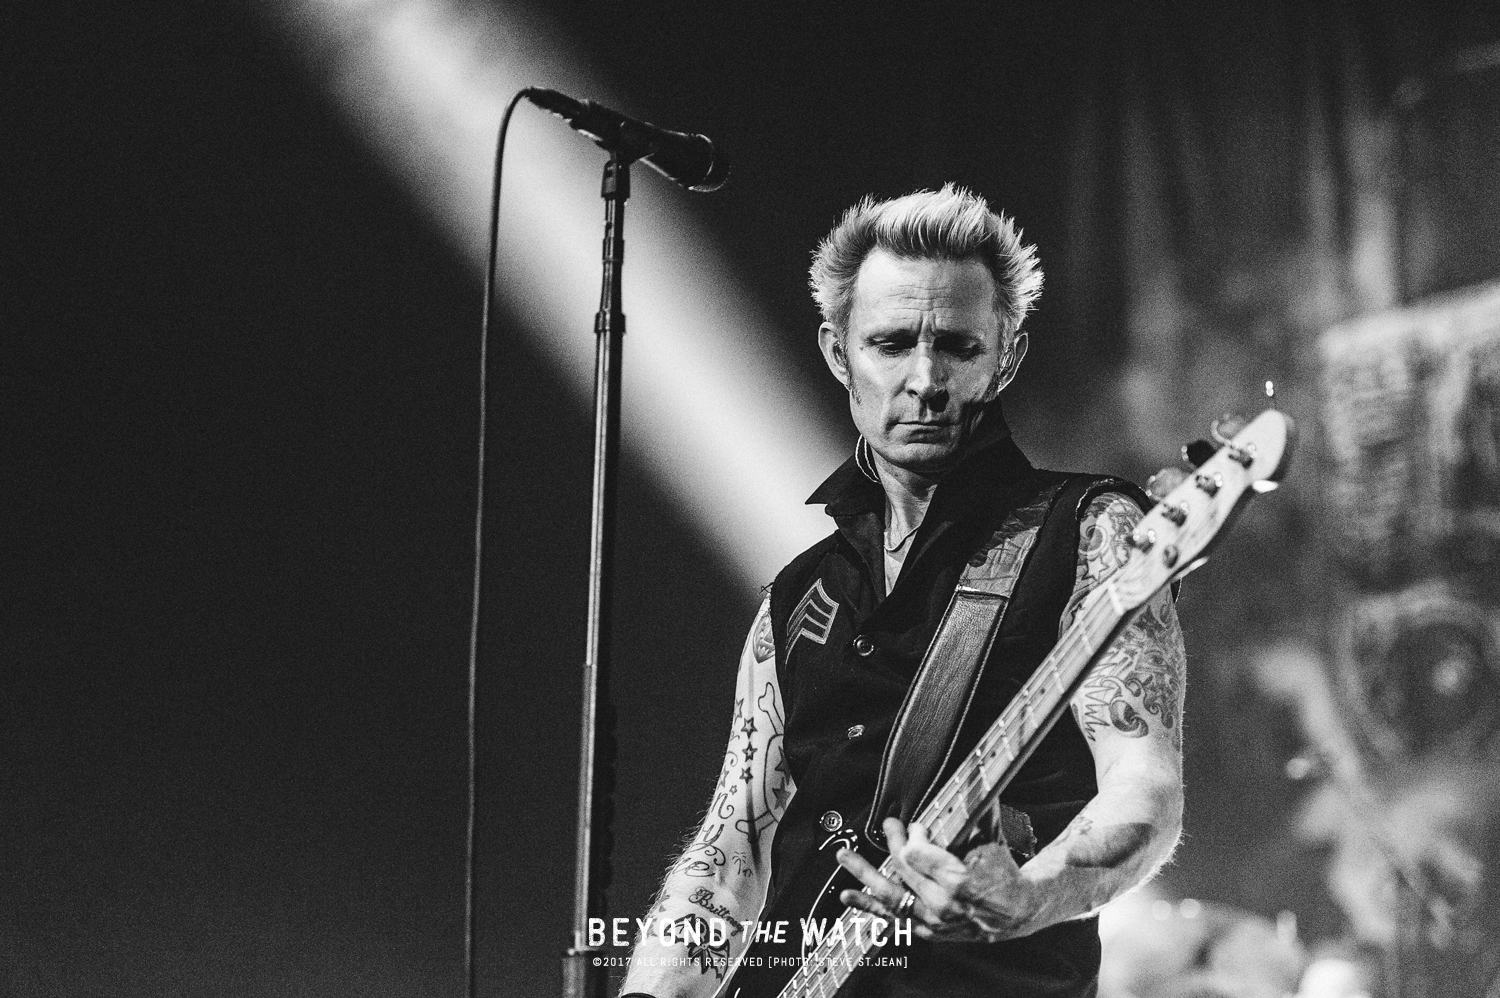 Mike Dirnt of Green Day